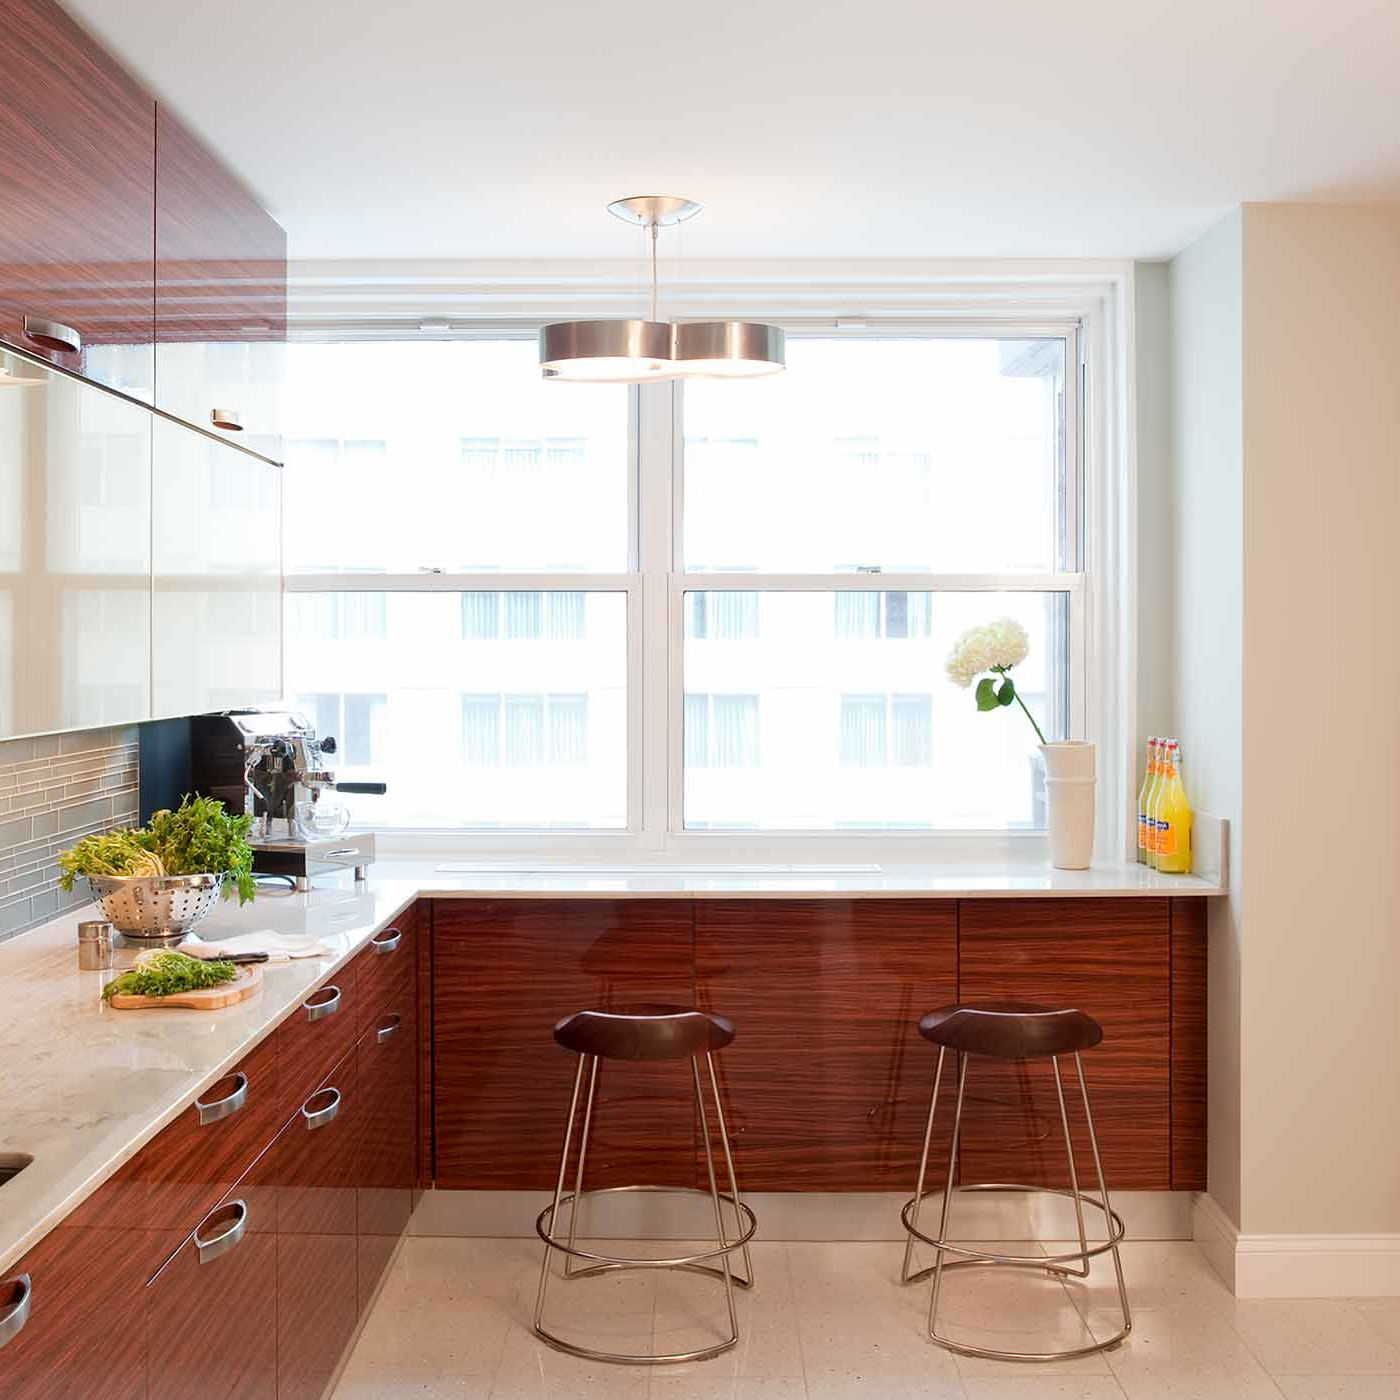 Kitchen Spring cleaning – Blog by Darci Hether New York